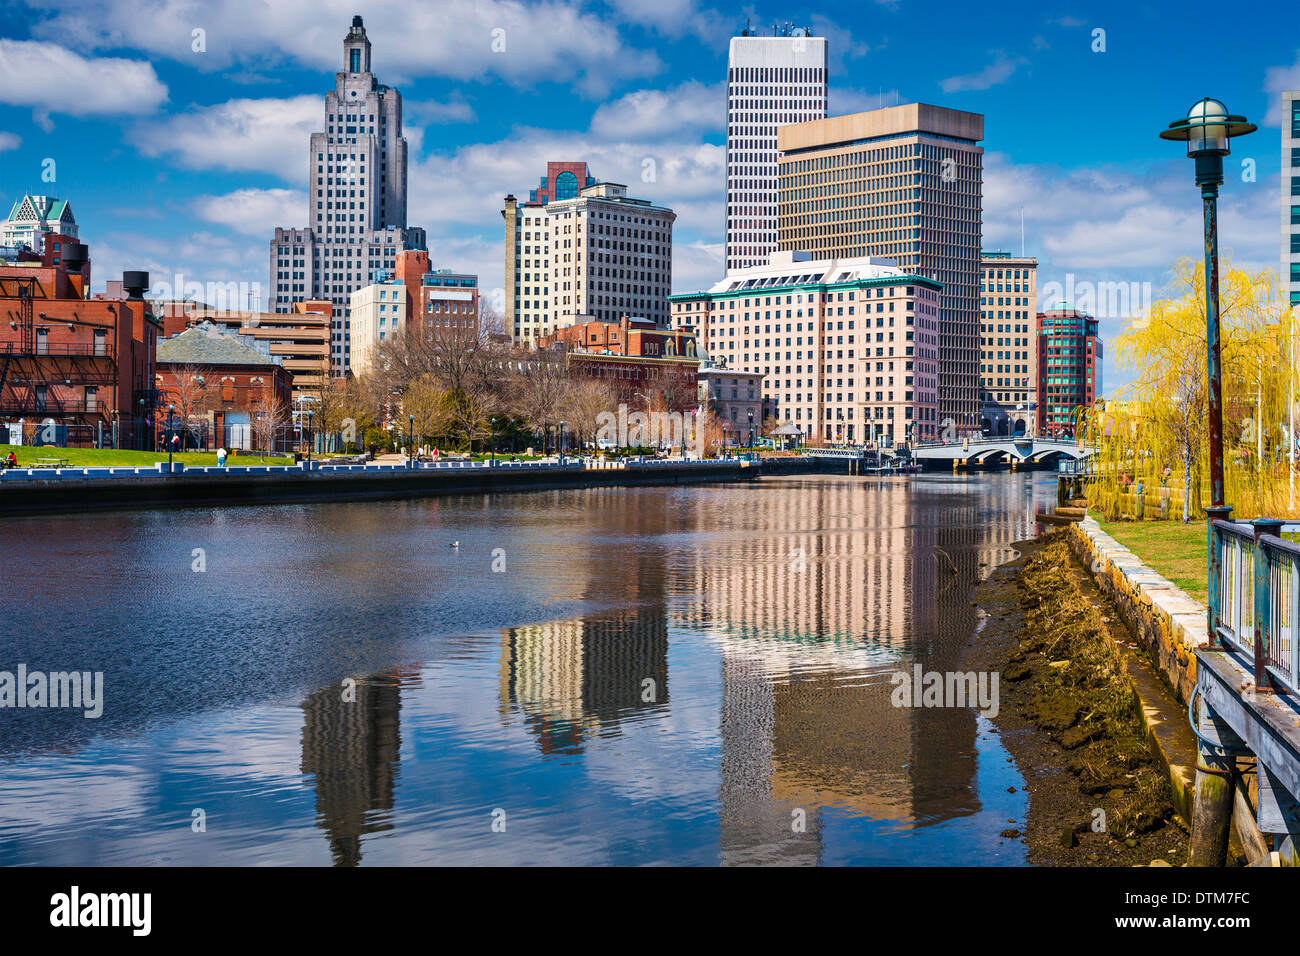 Providence, Rhode Island, USA downtown on the river. - Stock Image